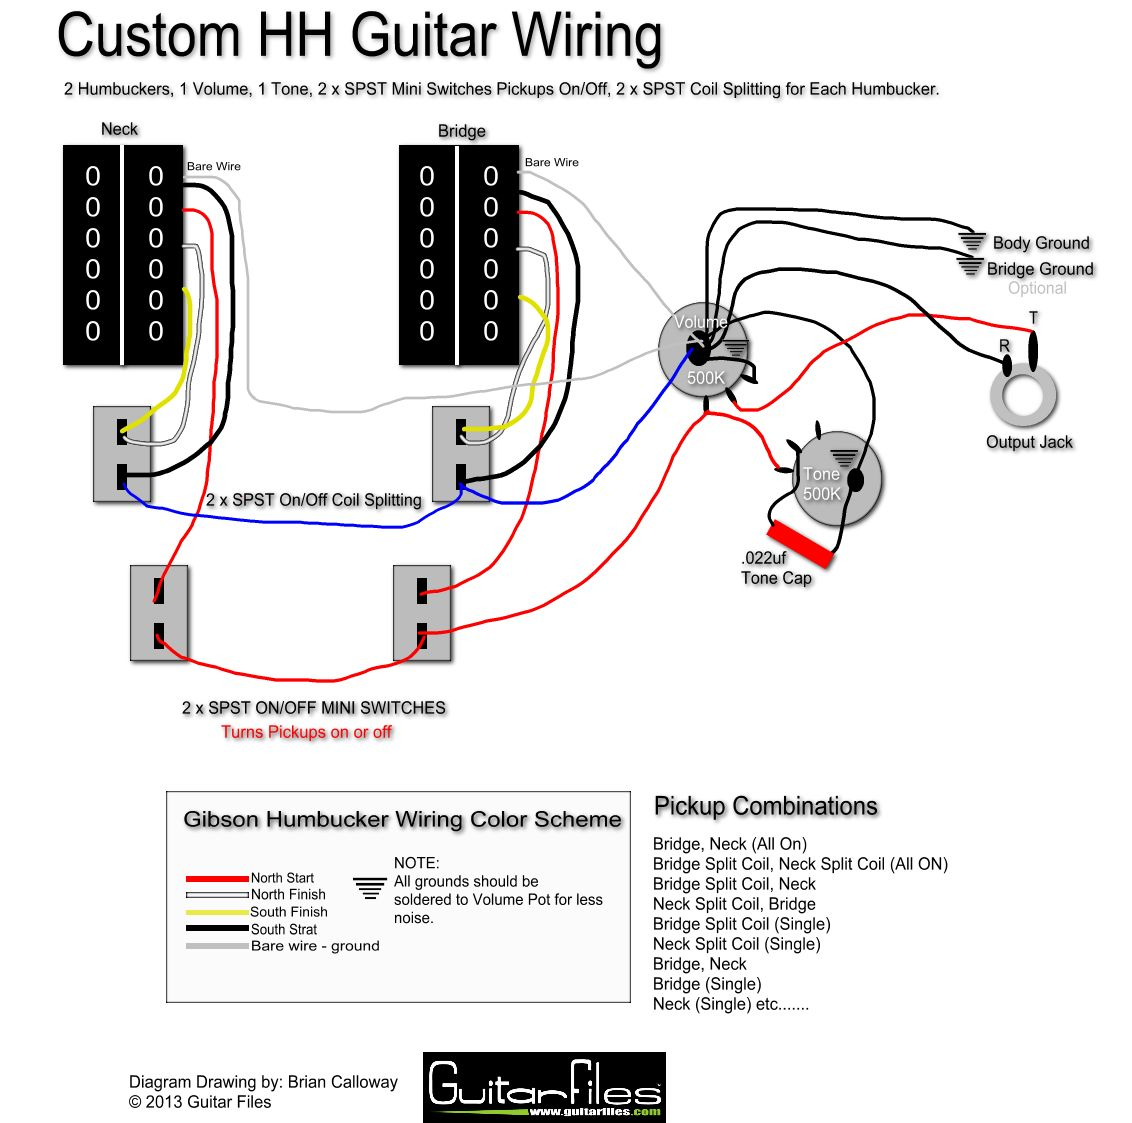 Custom HH Wiring Diagram With SPST Coil Splitting and SPST